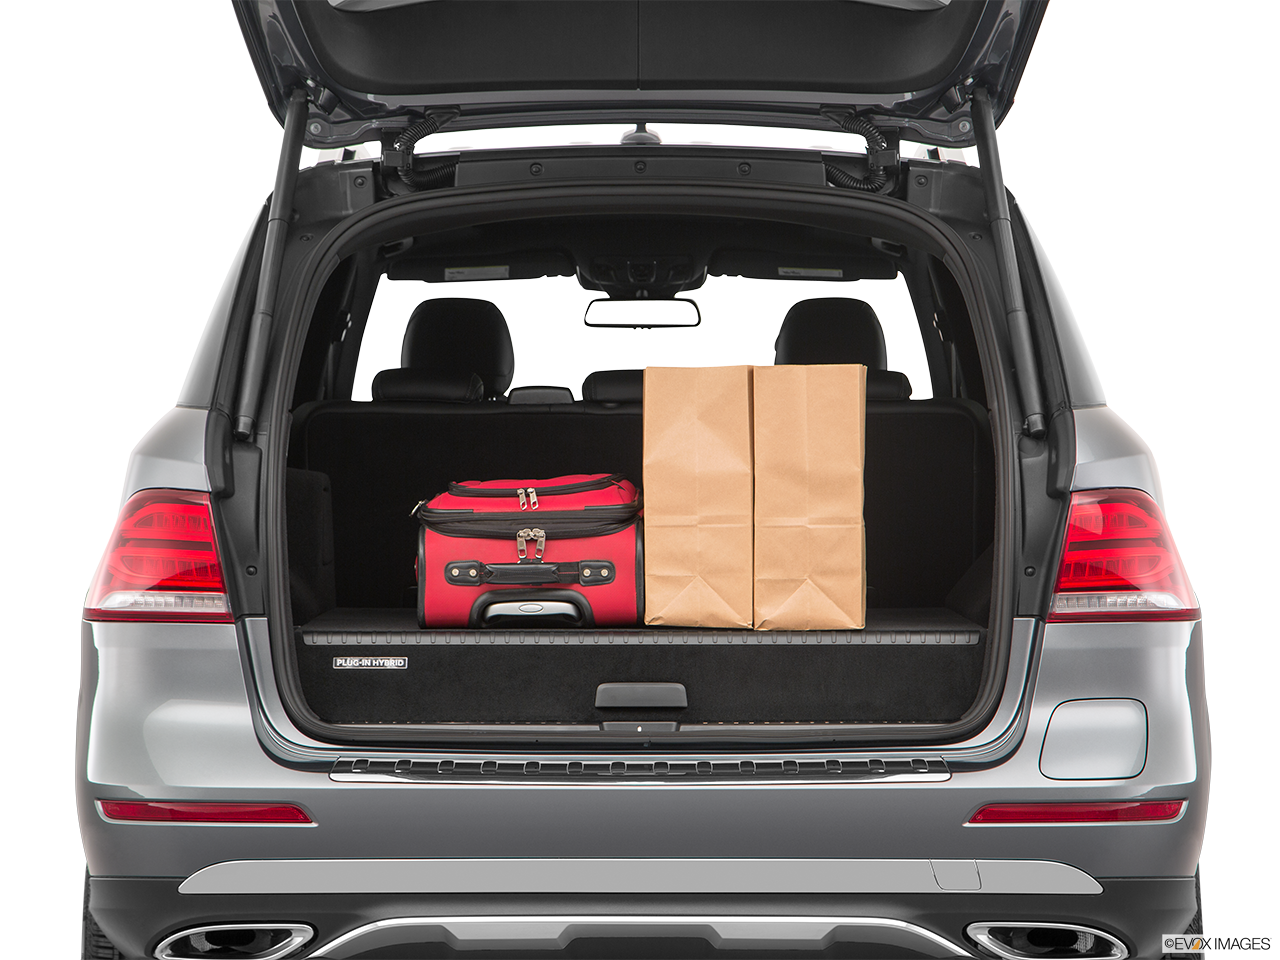 Trunk view of the Mercedes-Benz GLE550e